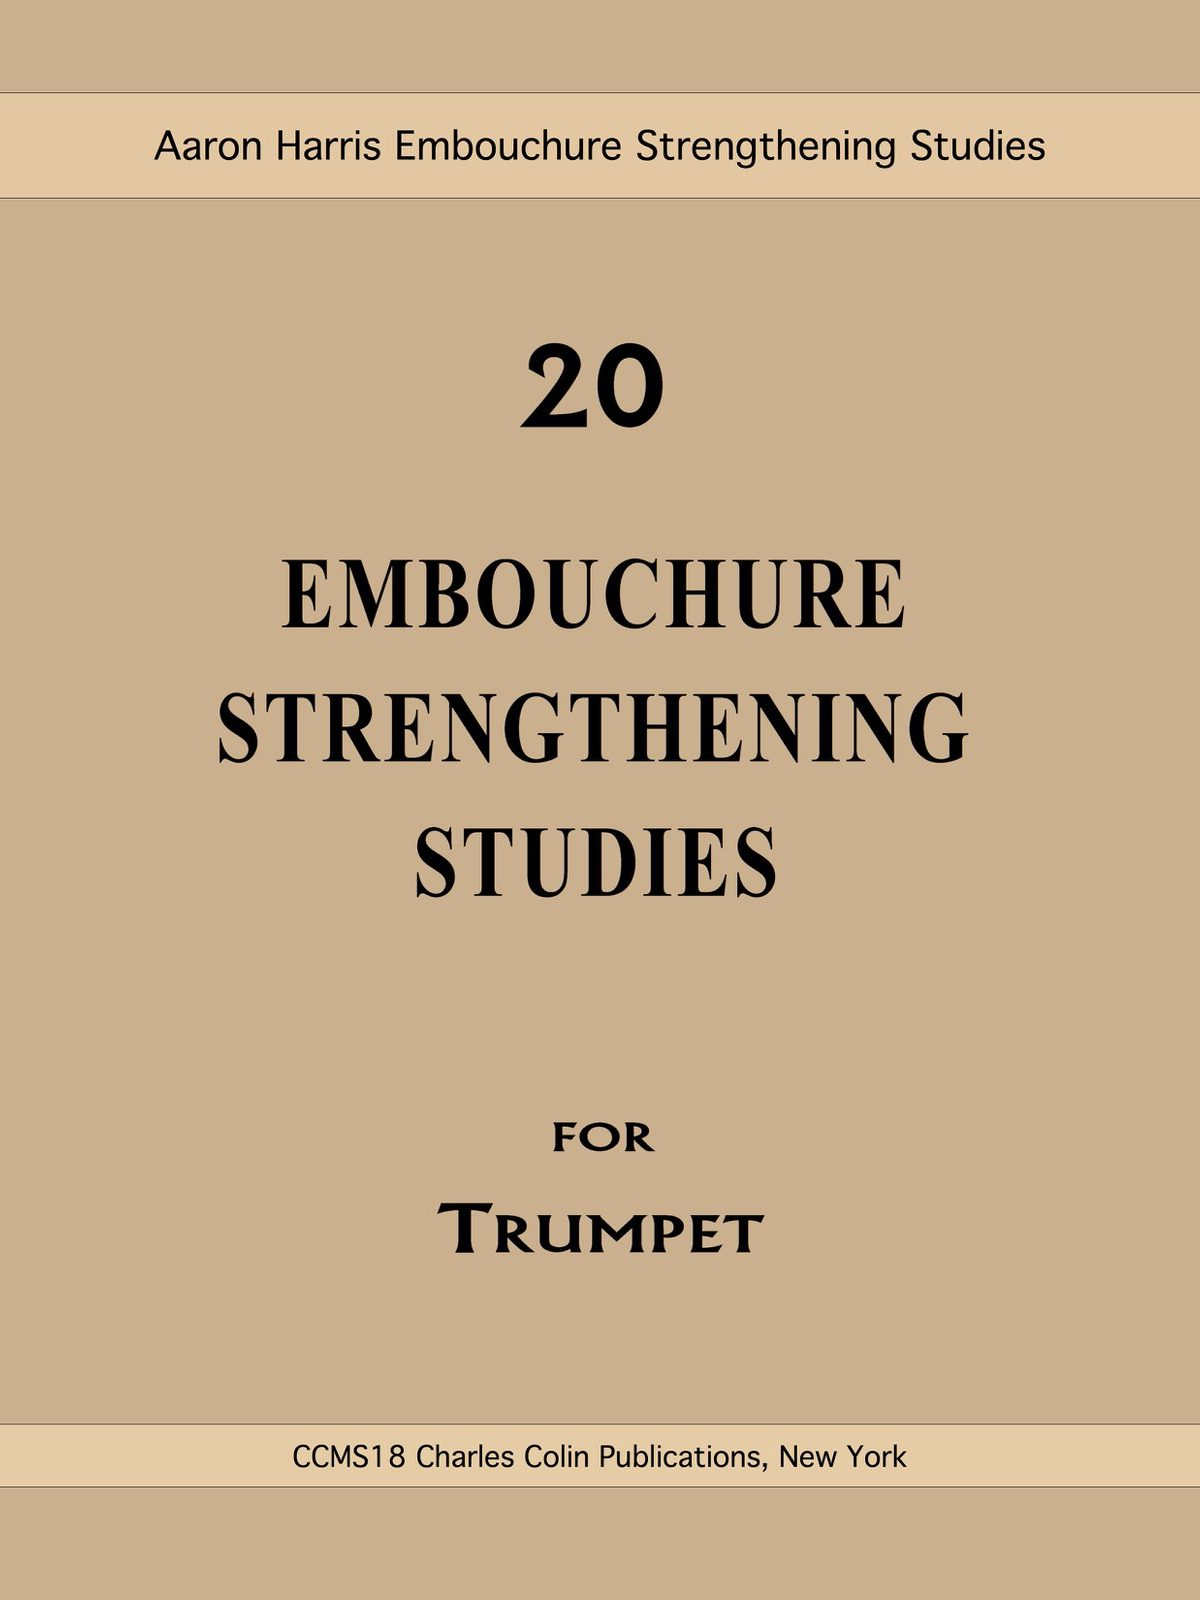 Harris, Embouchure Strengthening Studies copy-p01